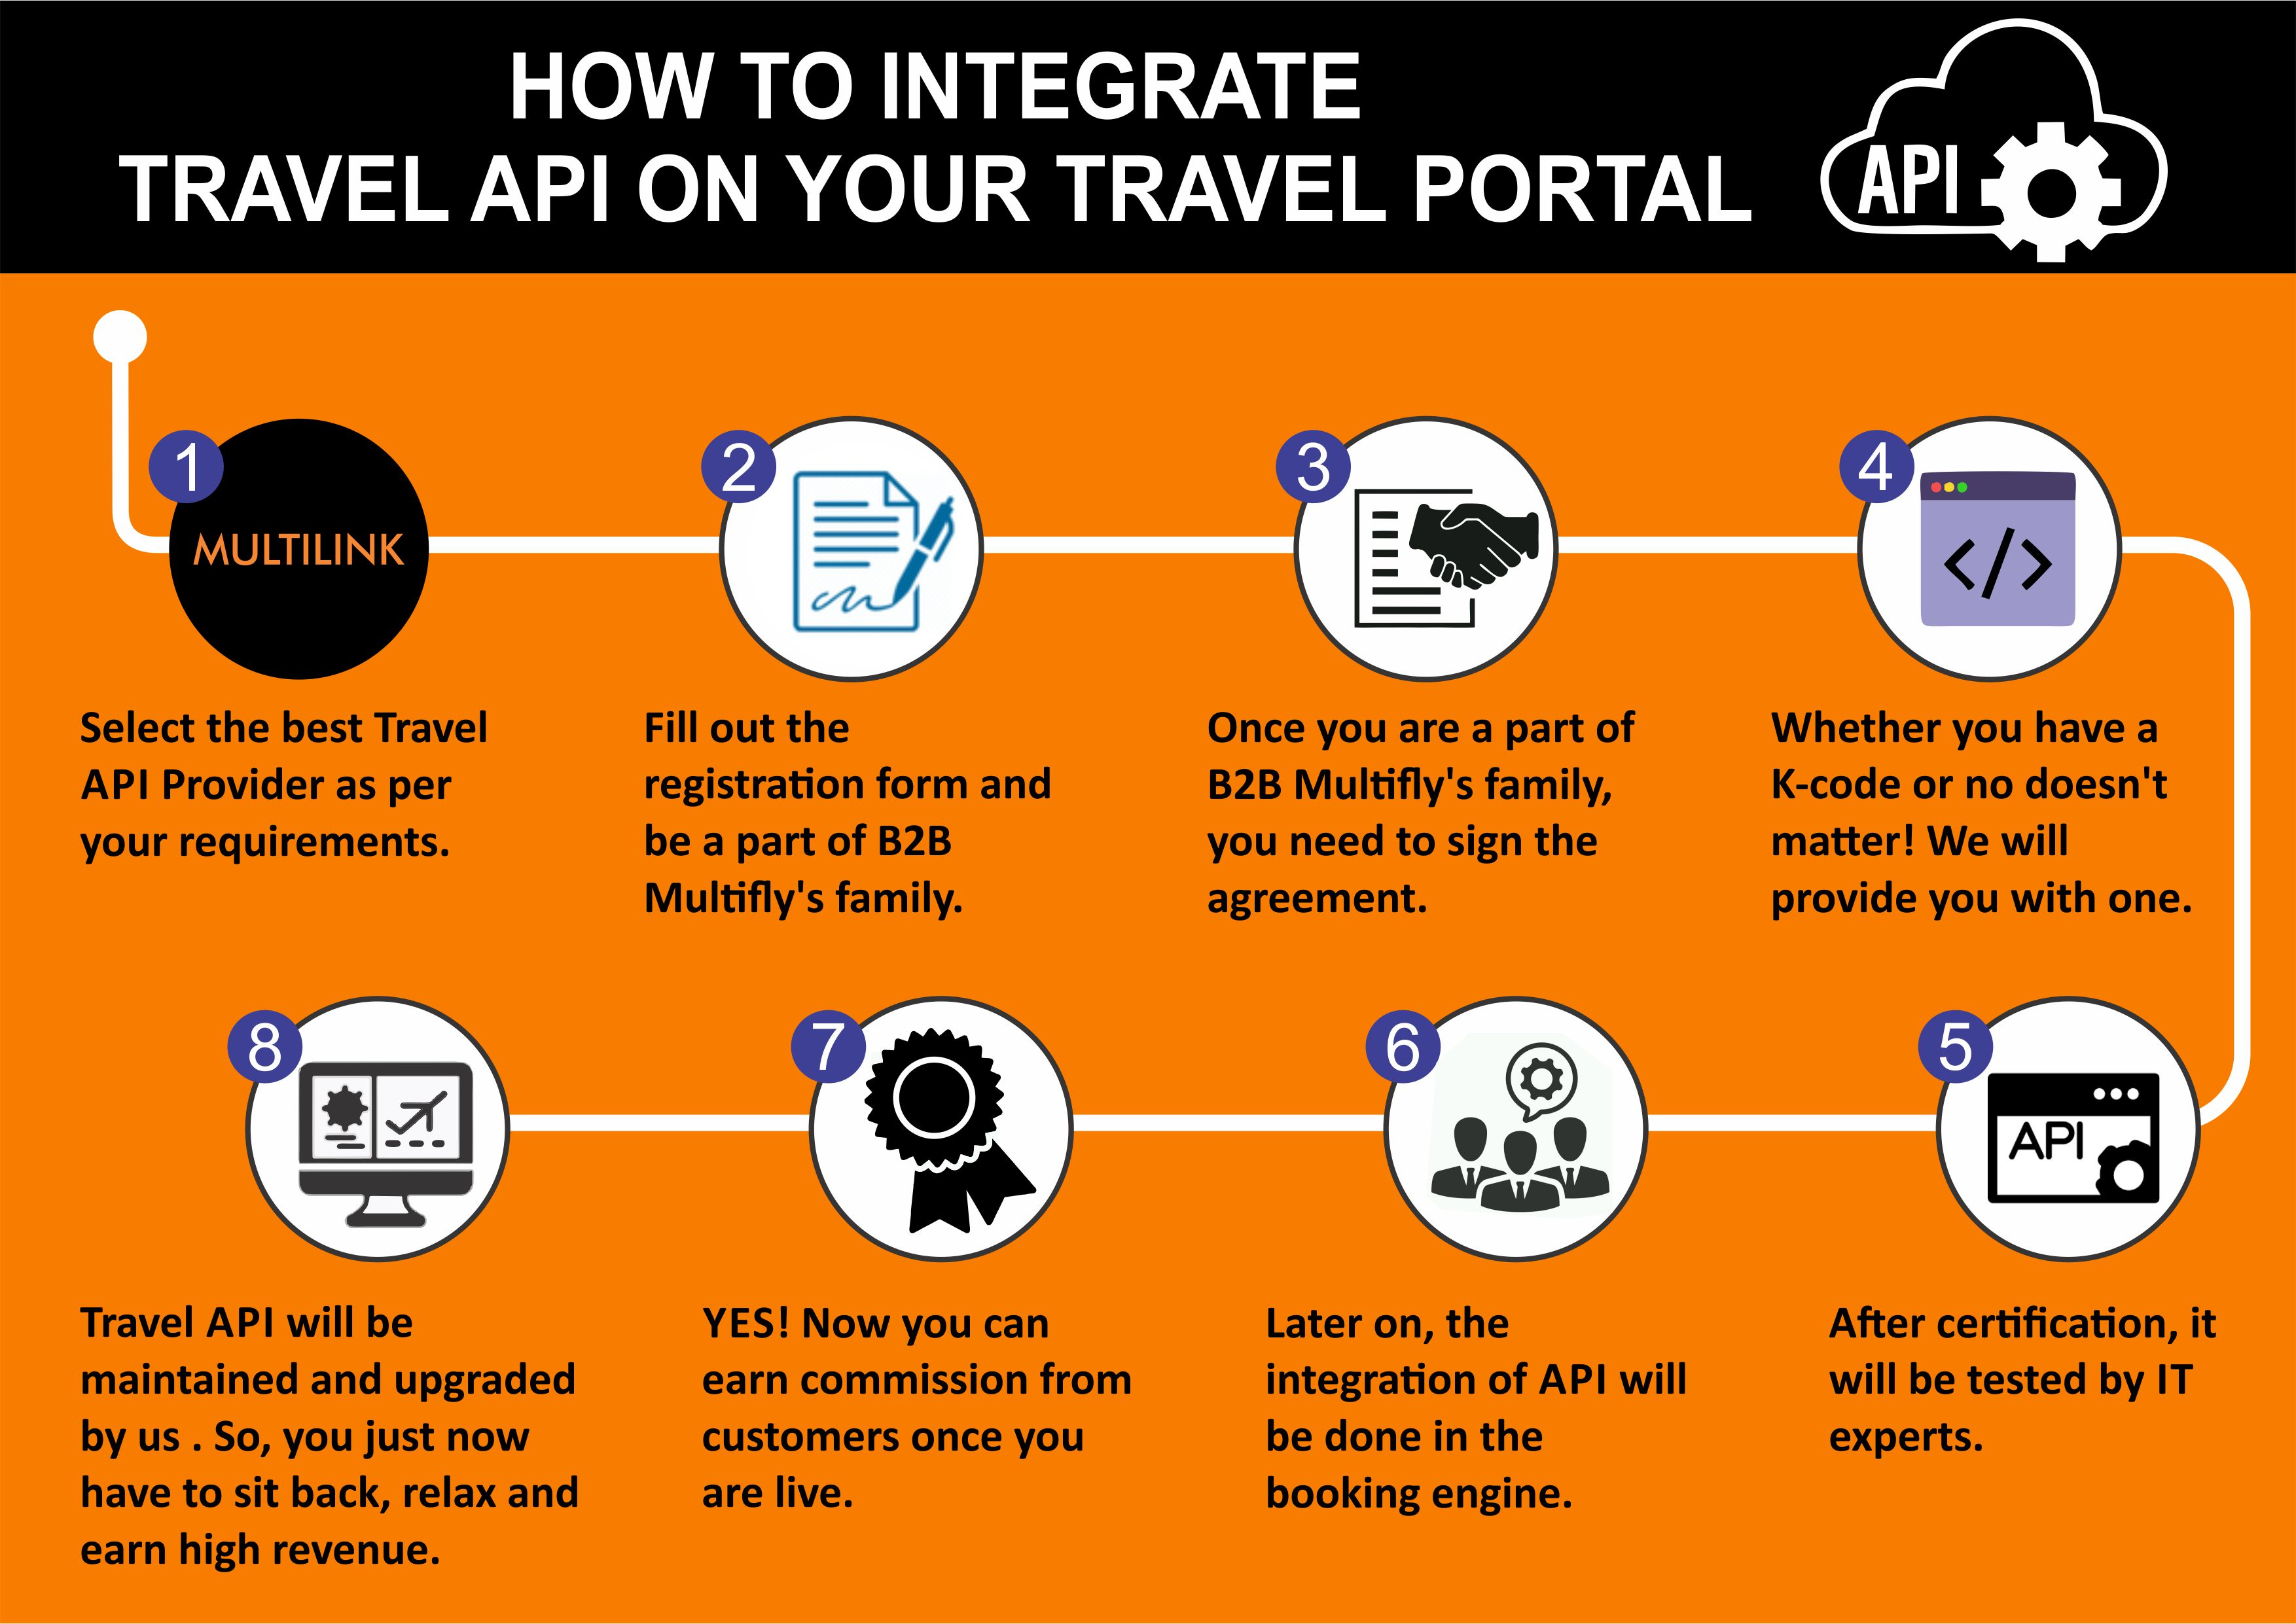 Learn How to Integrate Travel API on Your Travel Portal